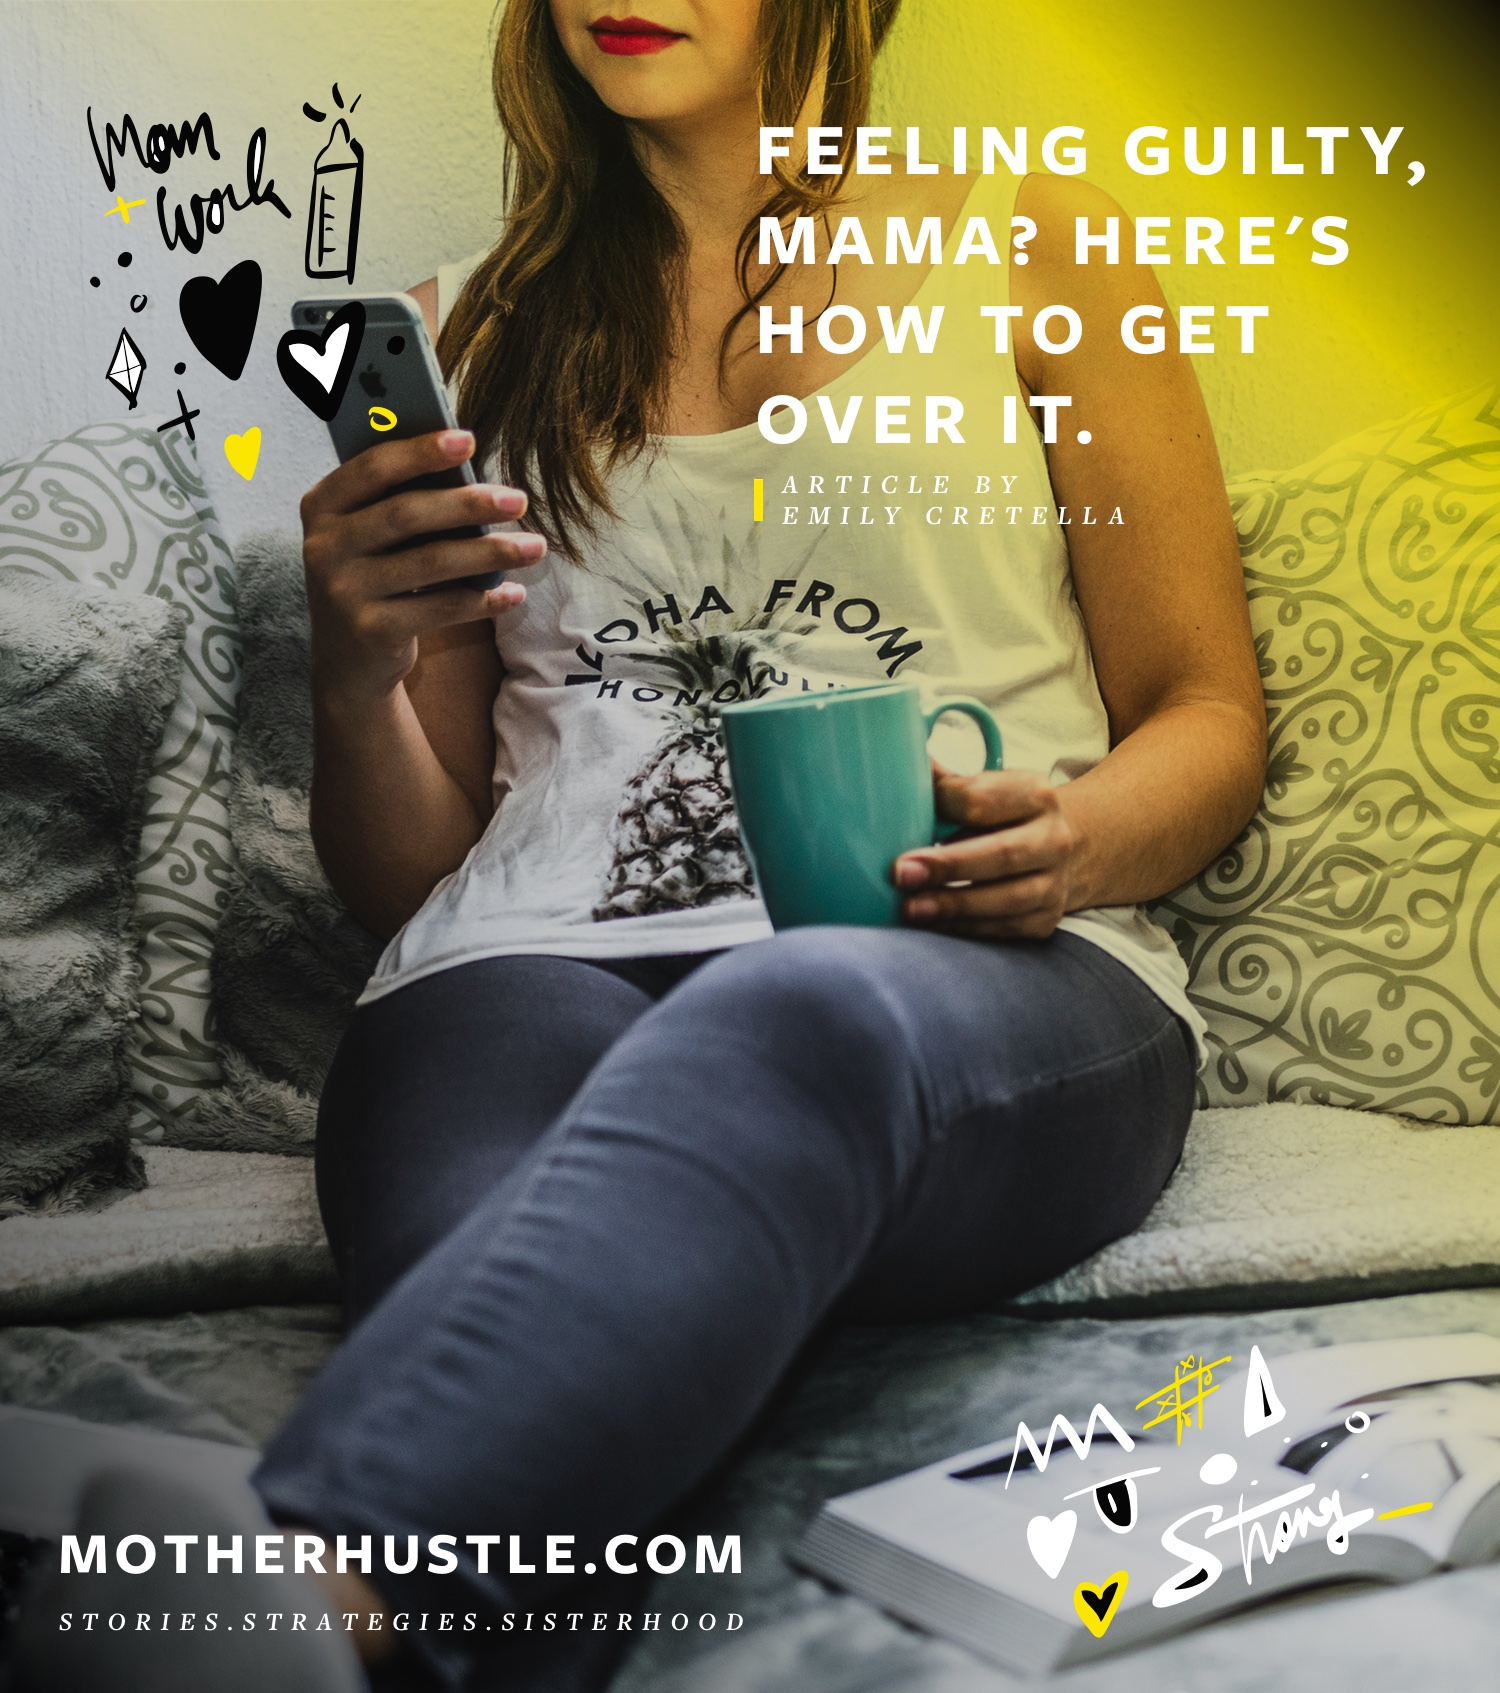 Feeling Guilty, Mama? Here's How to Get Over It. - BY Emily Cretella for MotherHustle